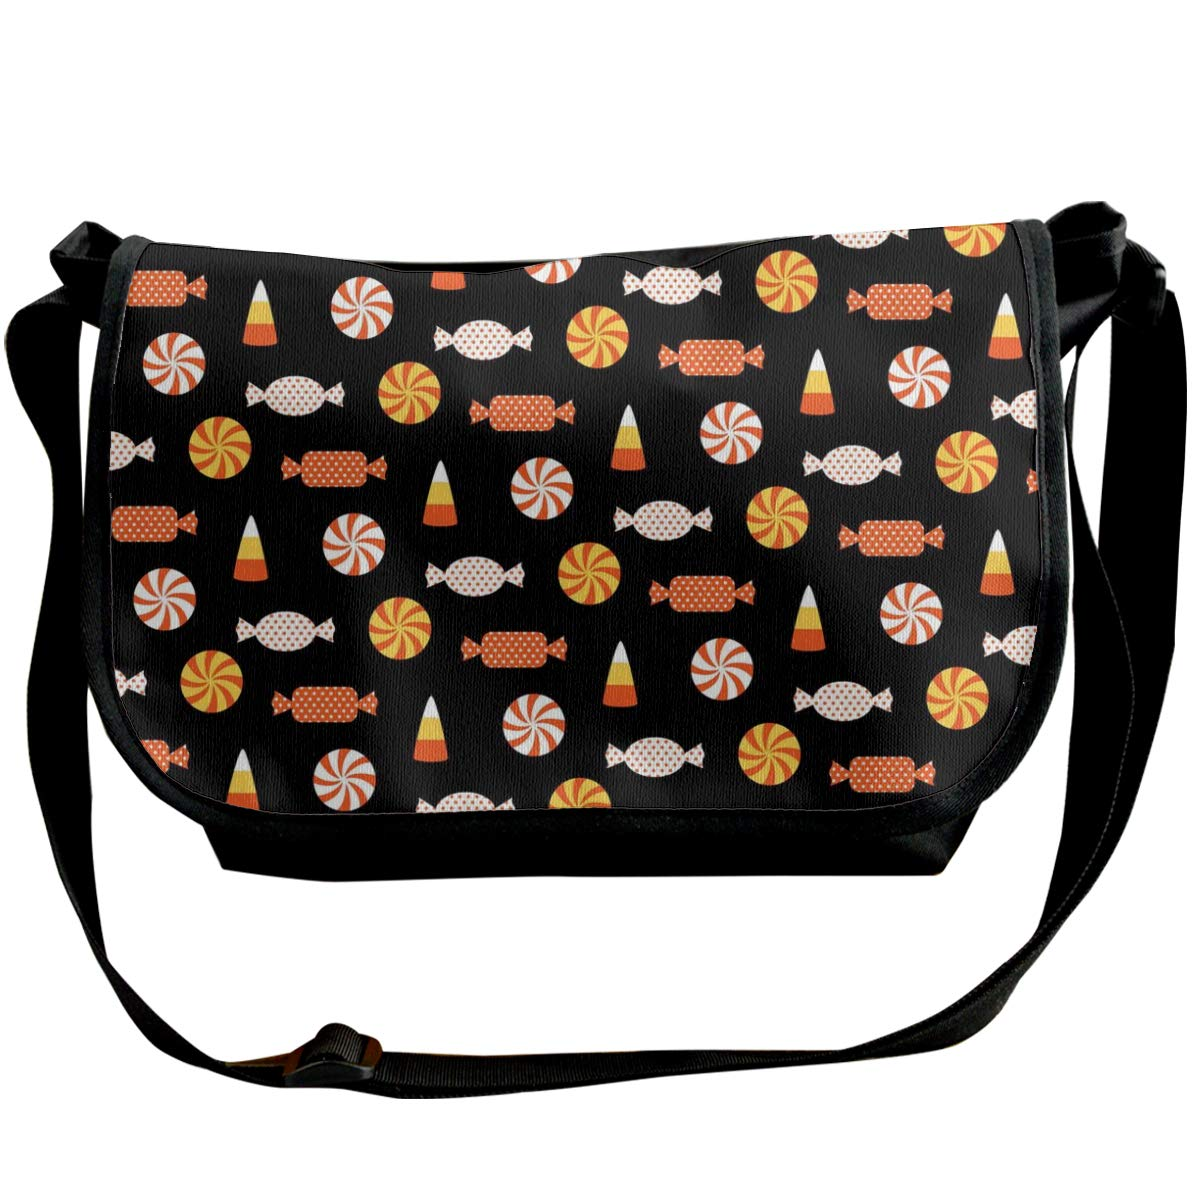 Taslilye Halloween Candy Vector Image Customized Wide Crossbody Shoulder Bag For Men And Women For Daily Work Or Travel